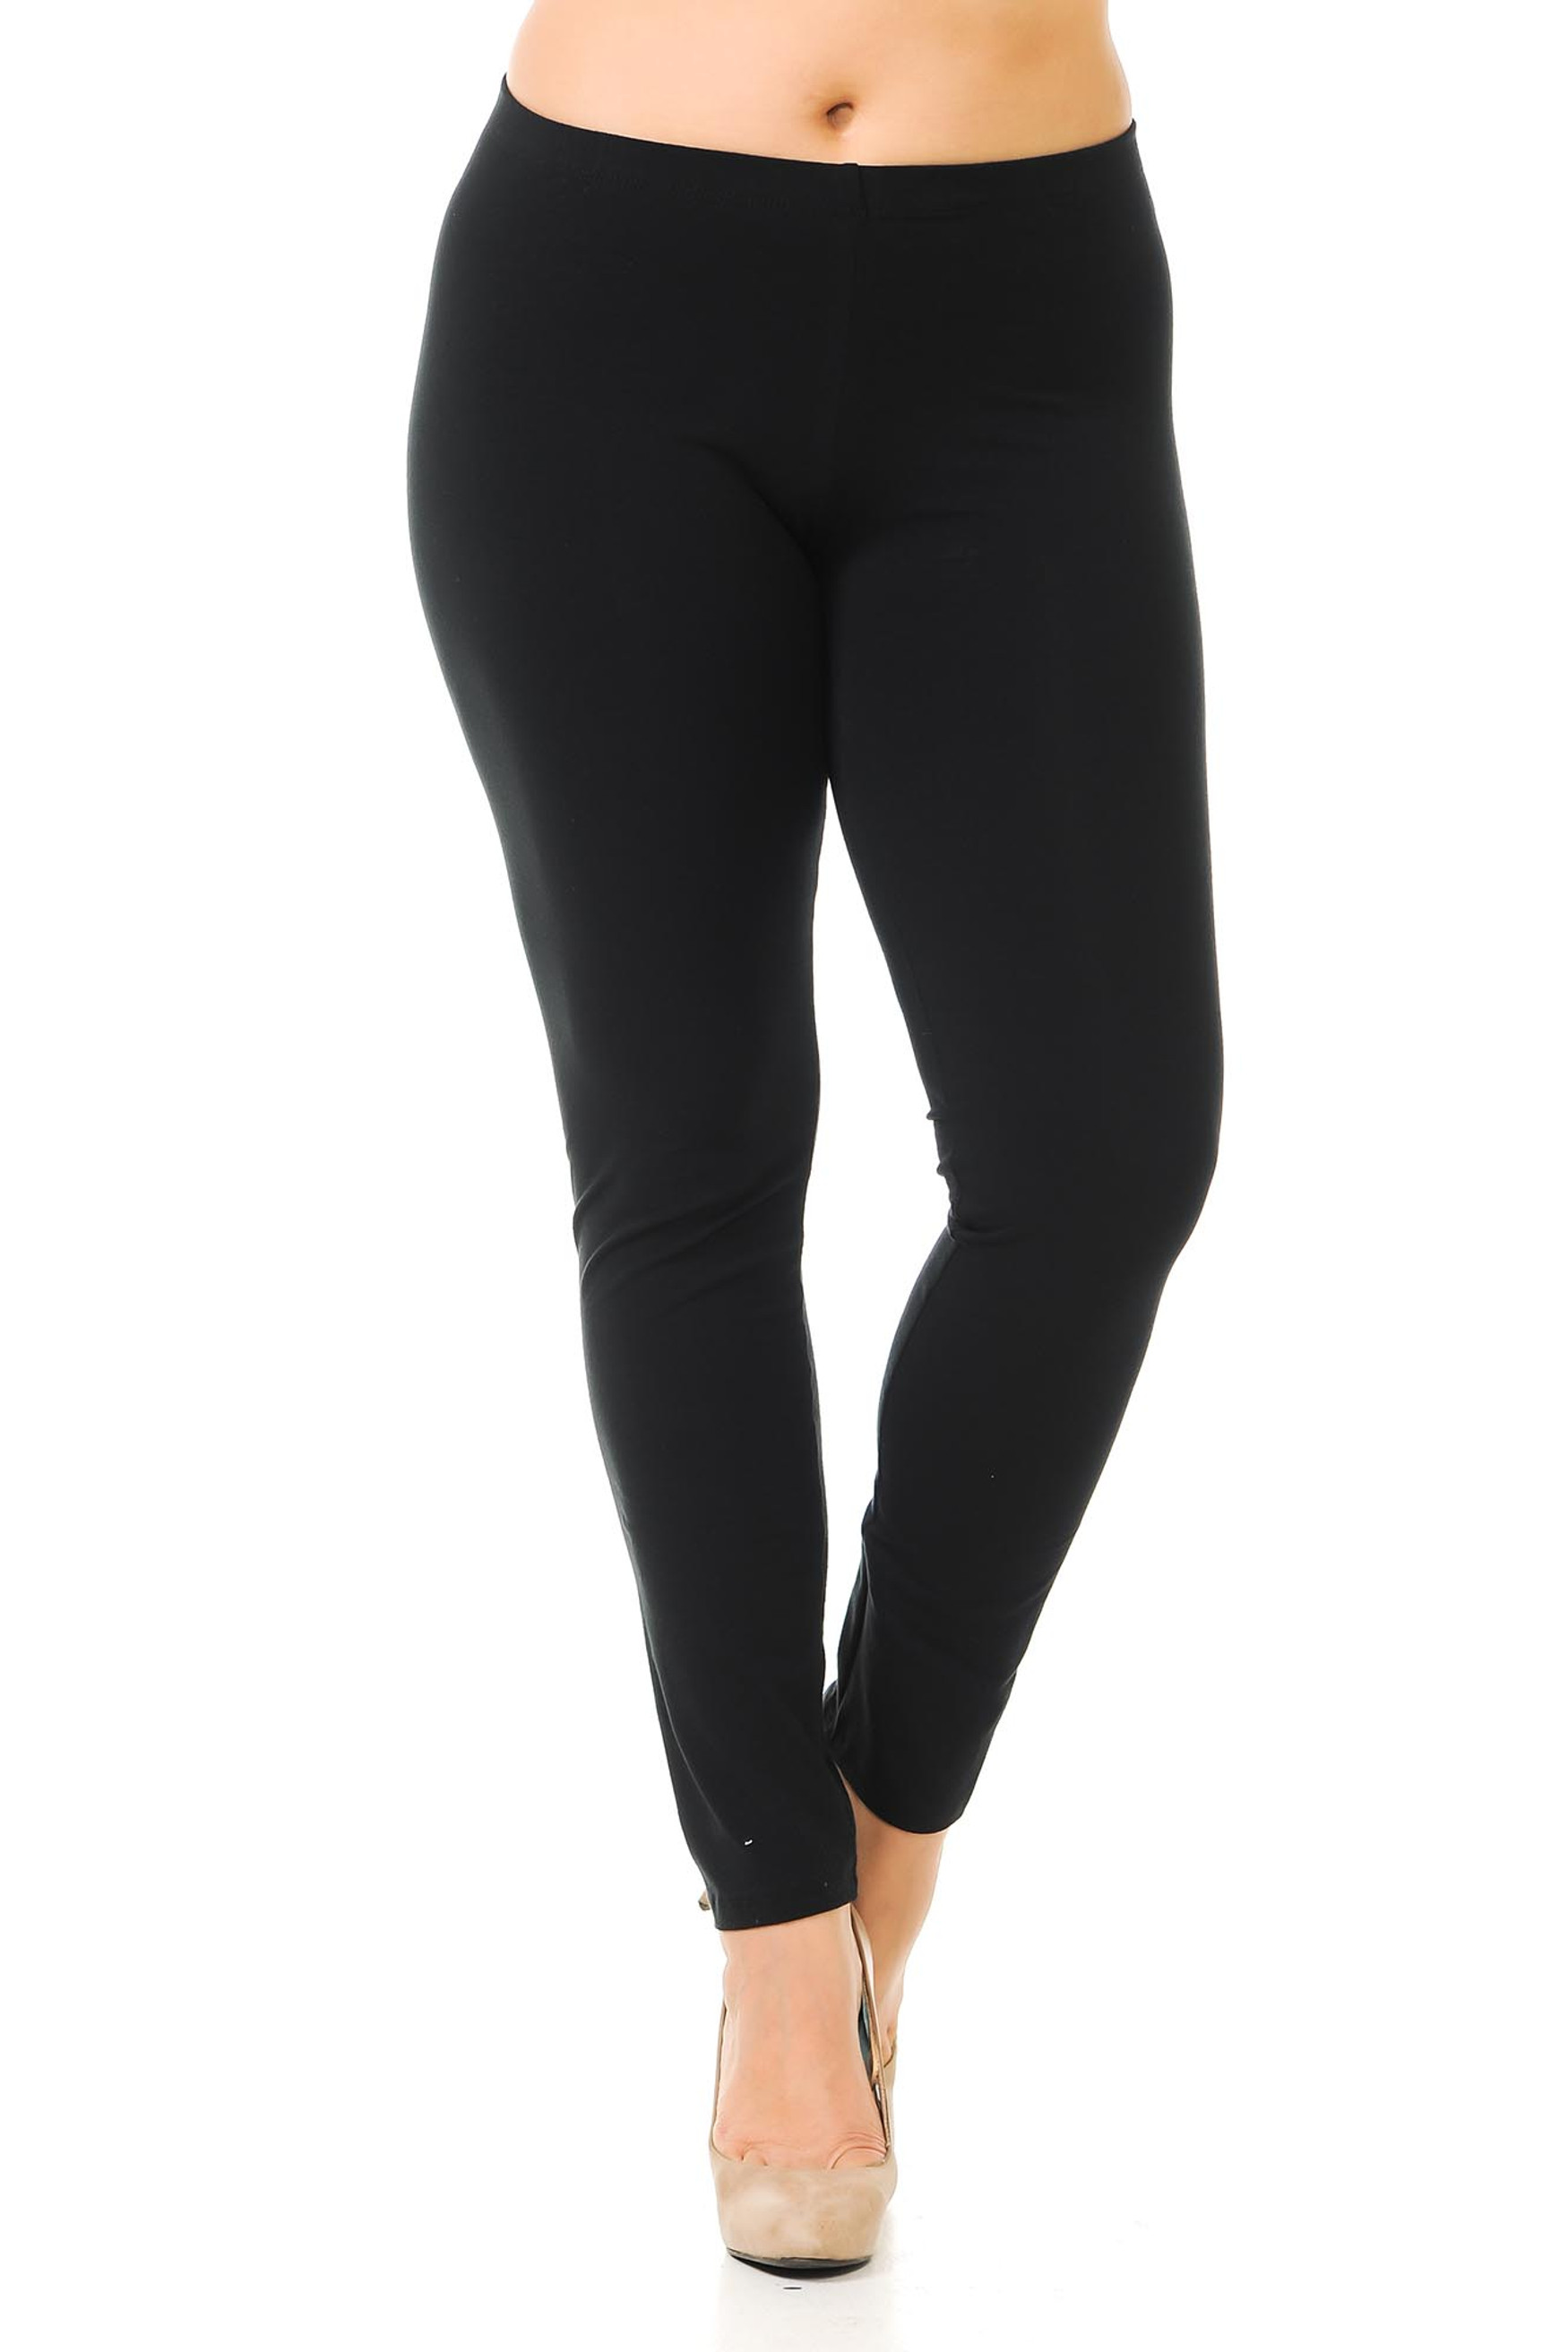 Front image of black full length USA cotton leggings made to fit sizes XL-3XL